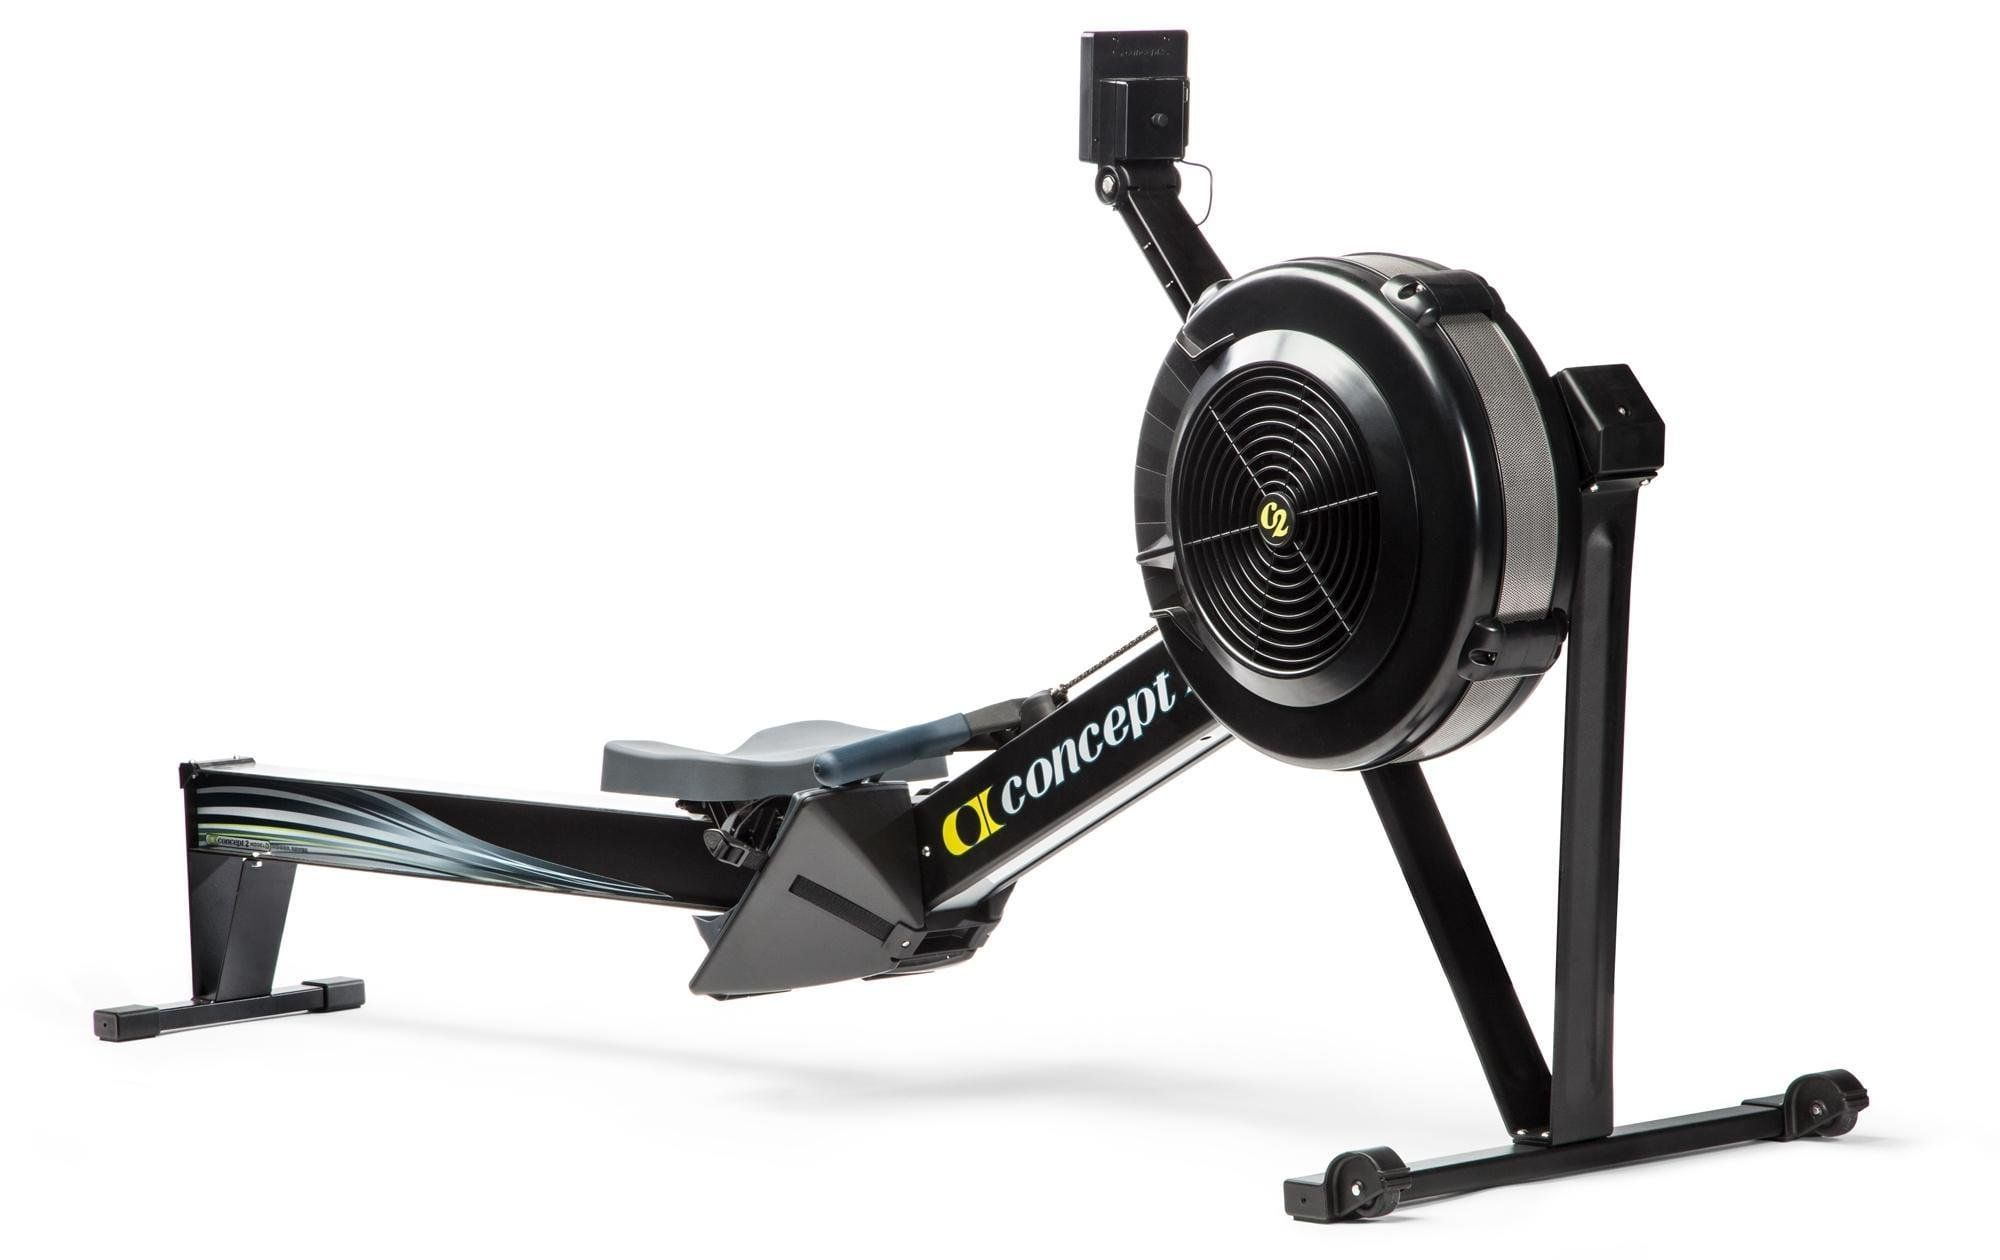 Pin By Stacey Waters On Chris Wish List Rowing Machines Indoor Rowing Rowing